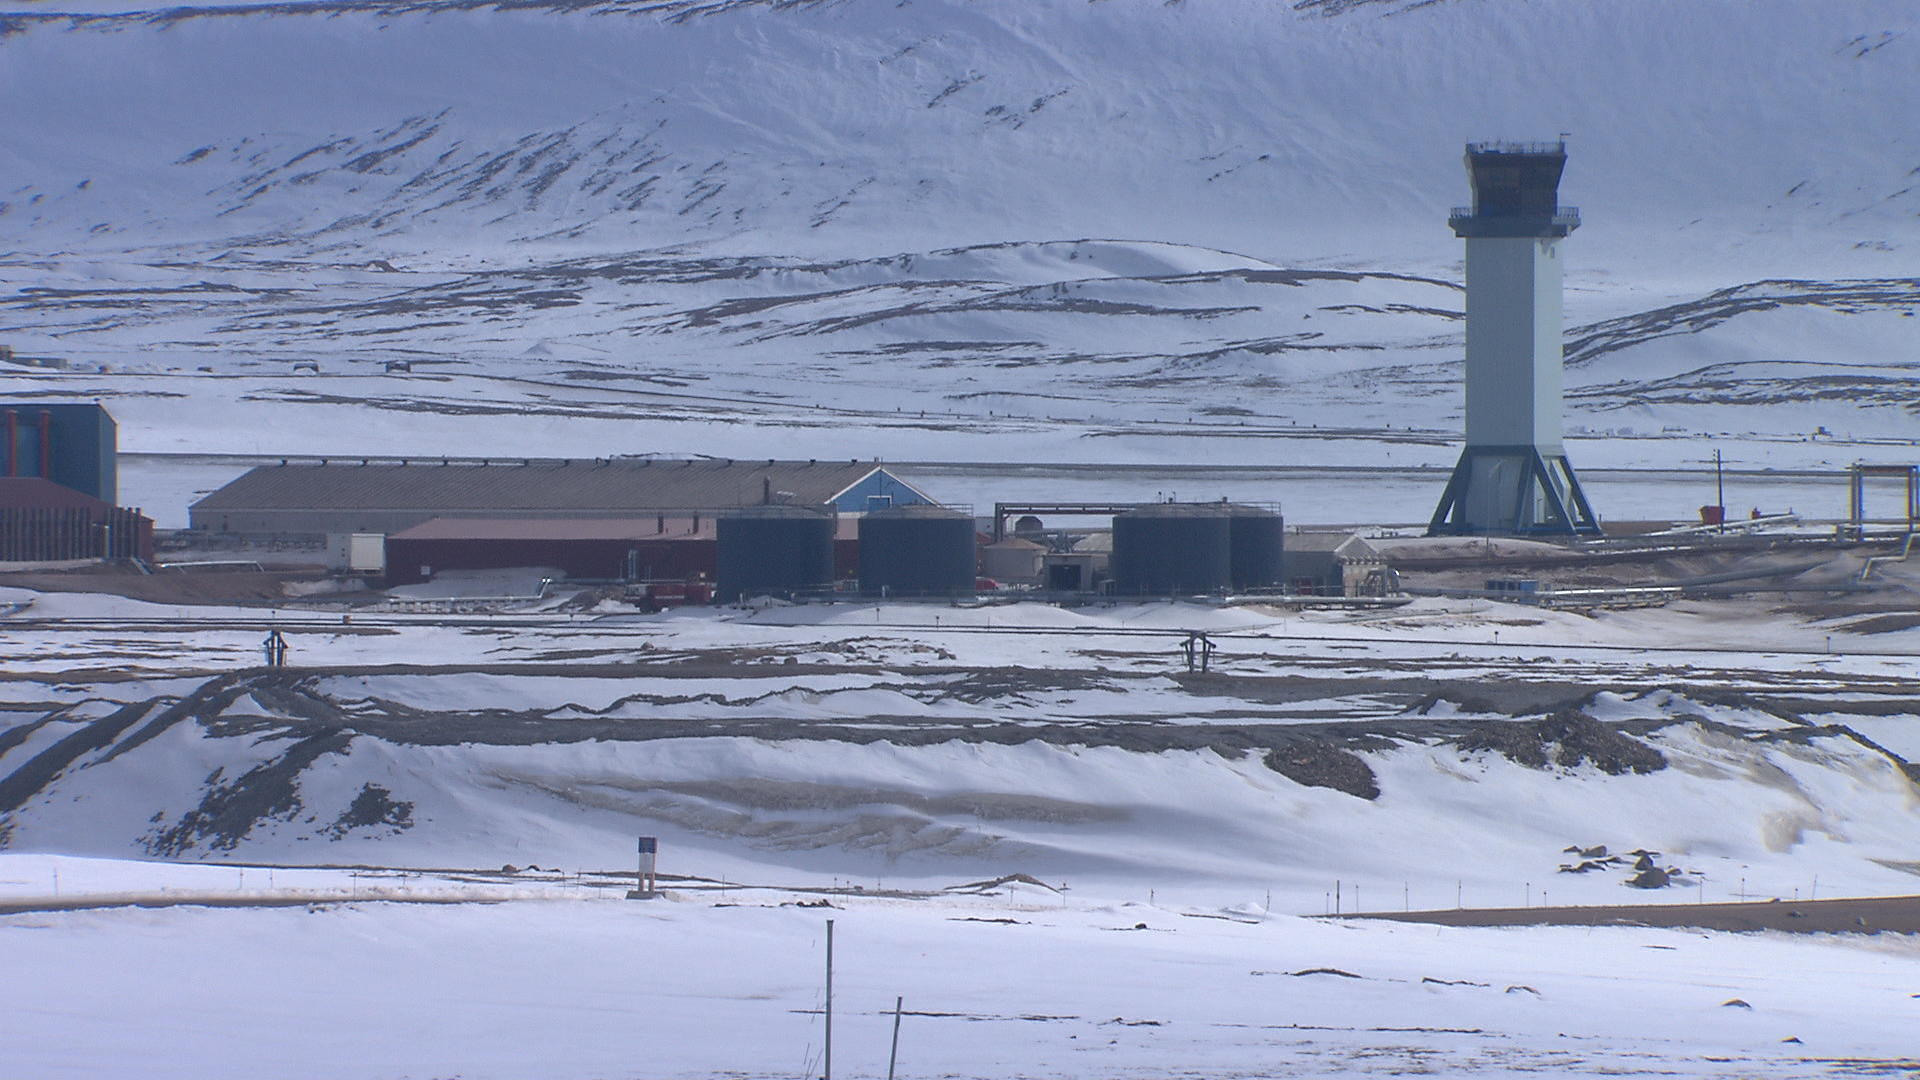 US Arctic air base upgraded amid growing missile threats